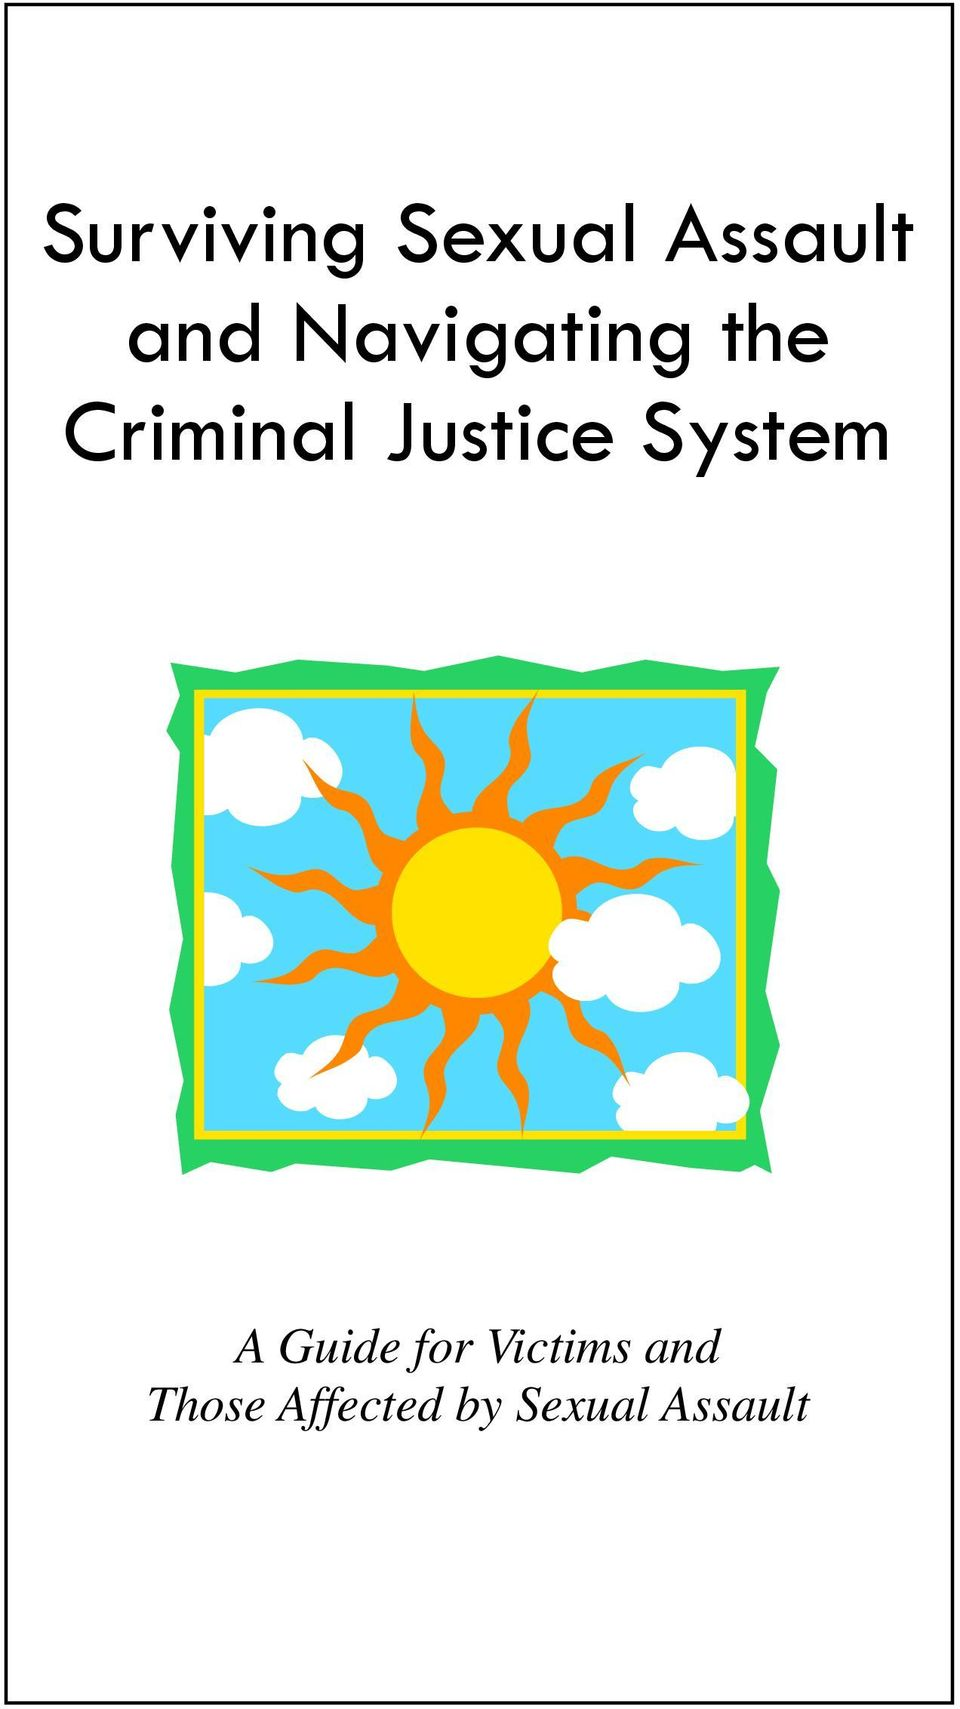 Justice System A Guide for